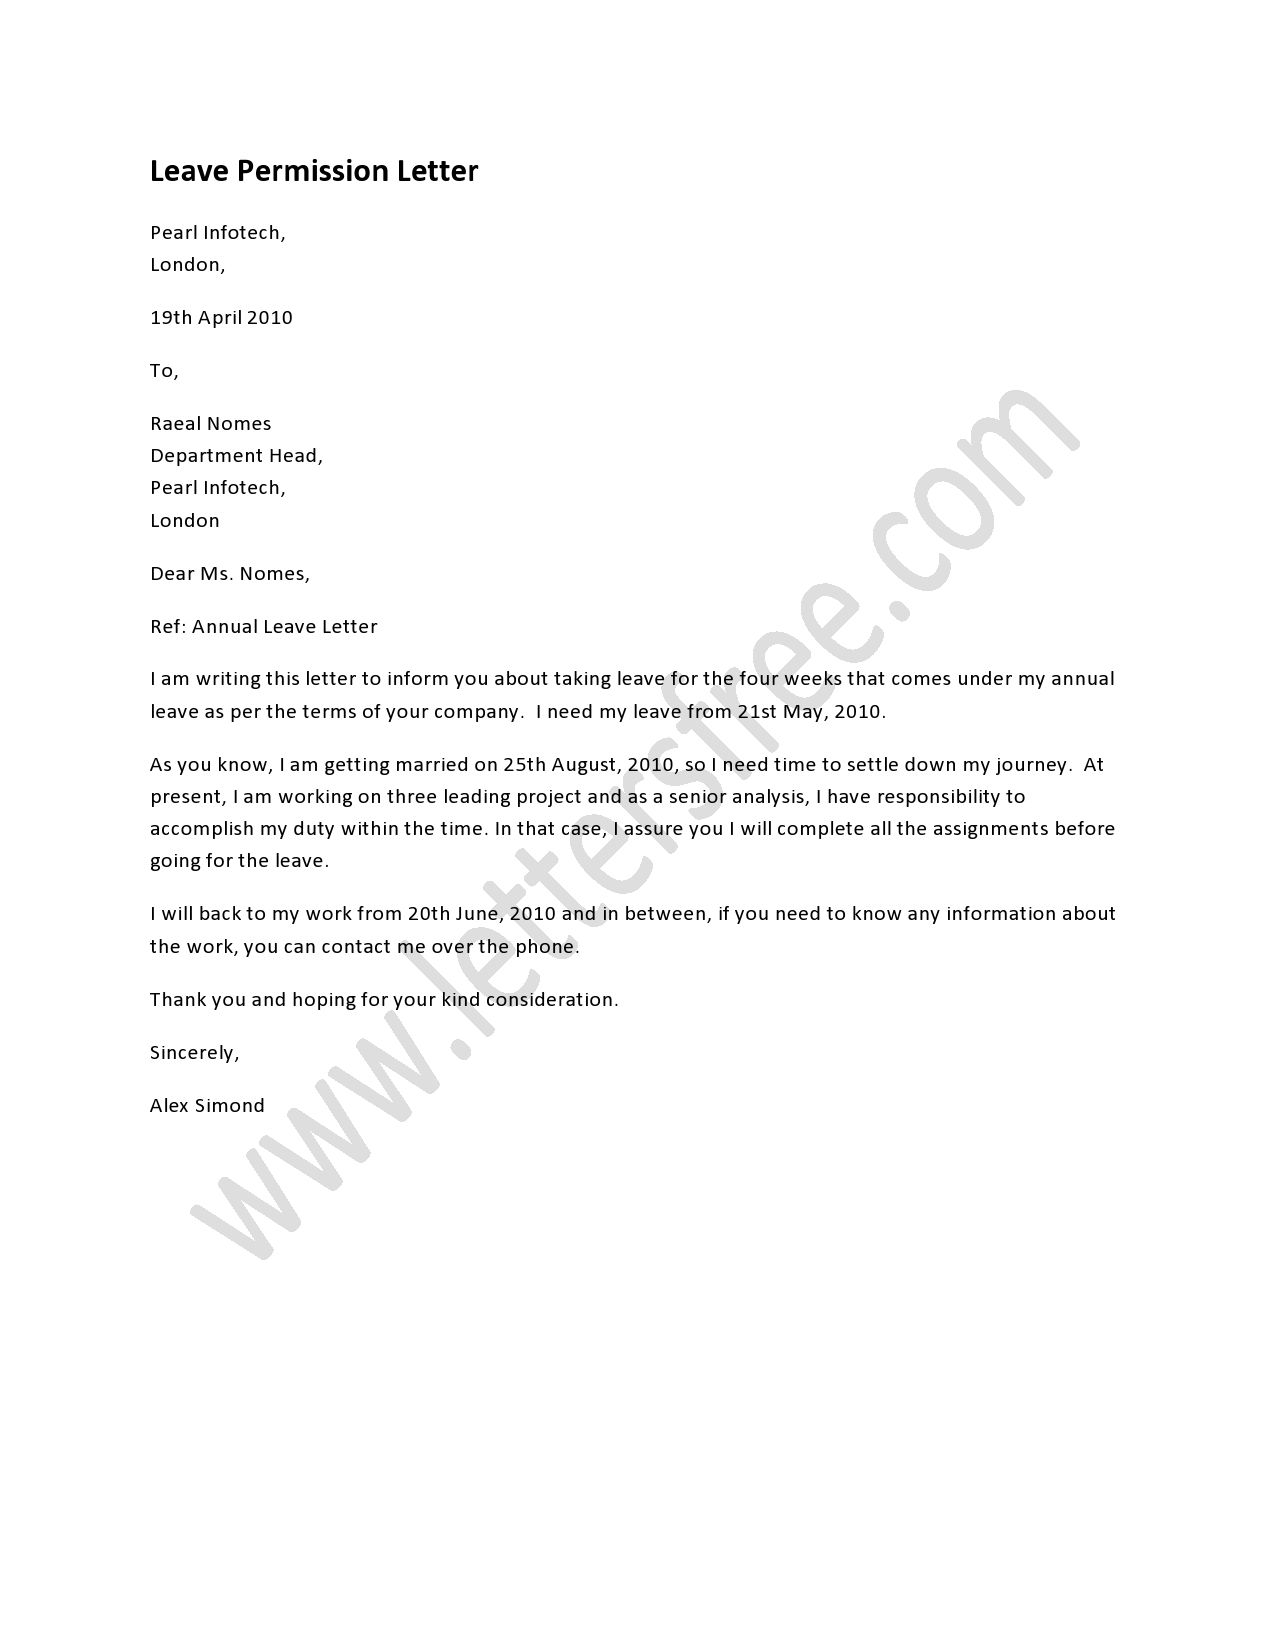 Samples of a good permission letter fresh permission letter format letter template permission fresh samples a good permission letter letter template permission fresh samples a good permission letter copy parental consent spiritdancerdesigns Choice Image